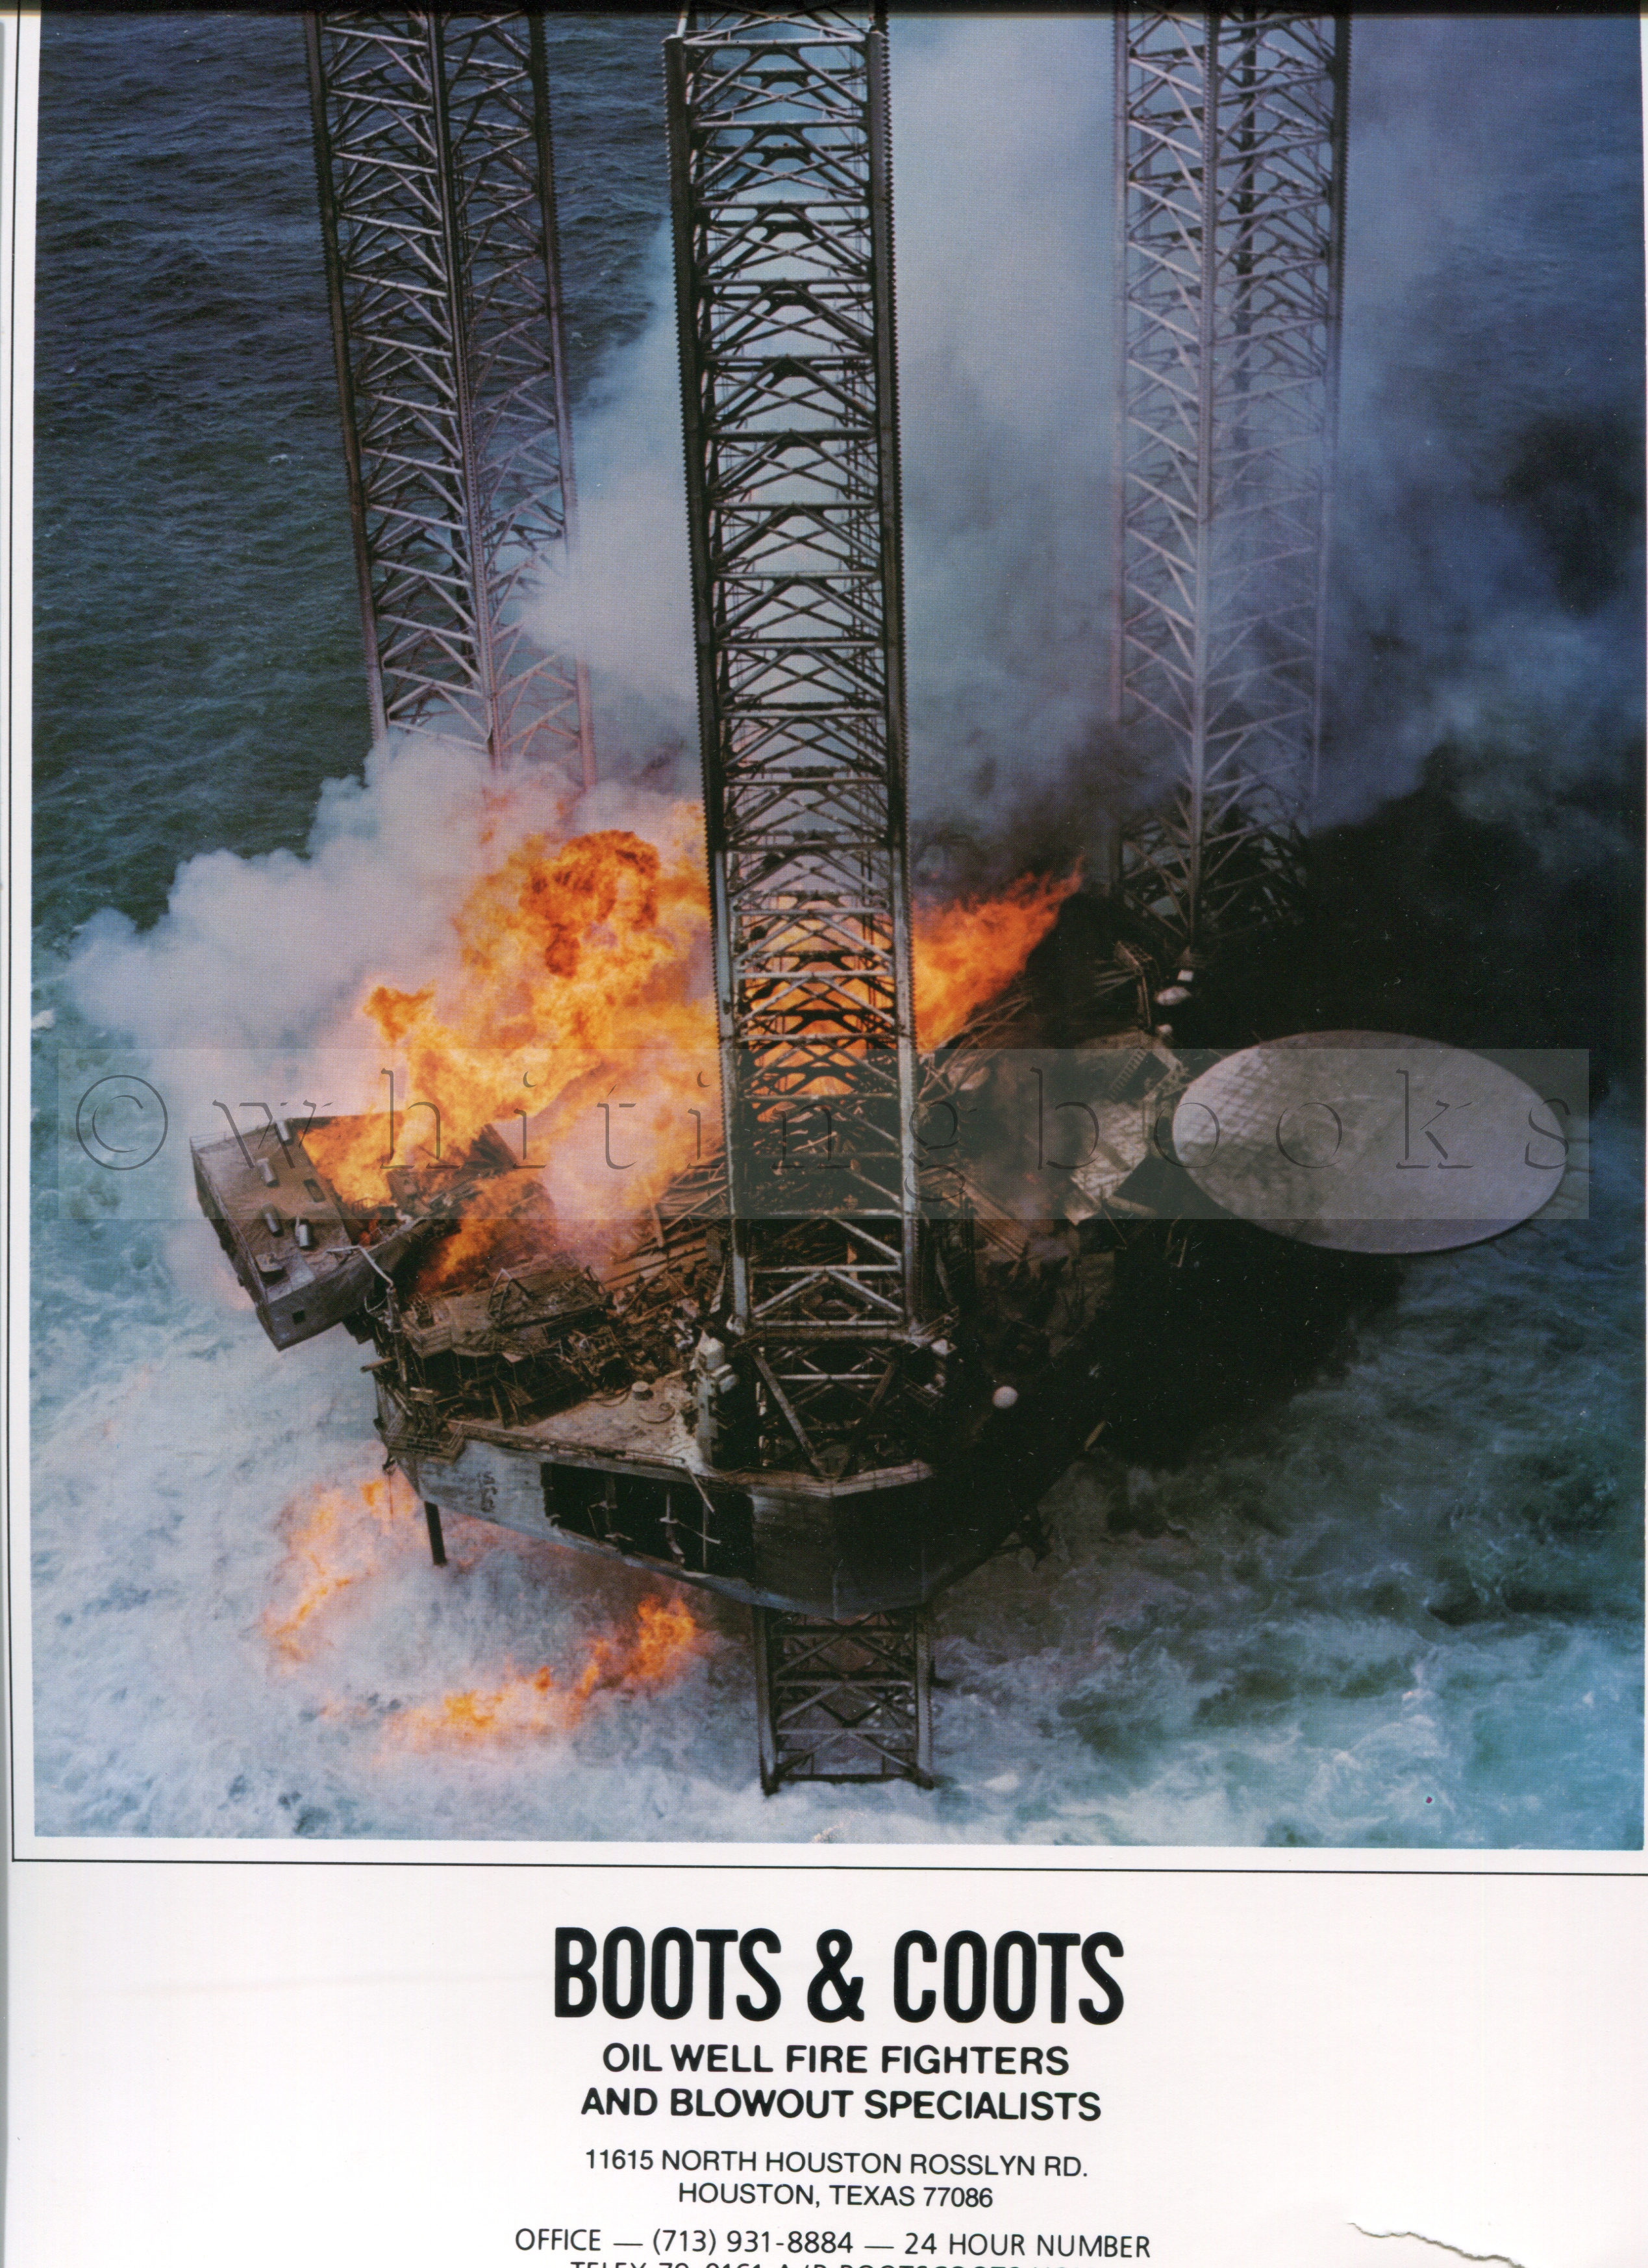 Boots & Coots Oil Well Fire Fighters and Blowout Specialists - Lot of Seven Color Posters Advertising the Company's Services